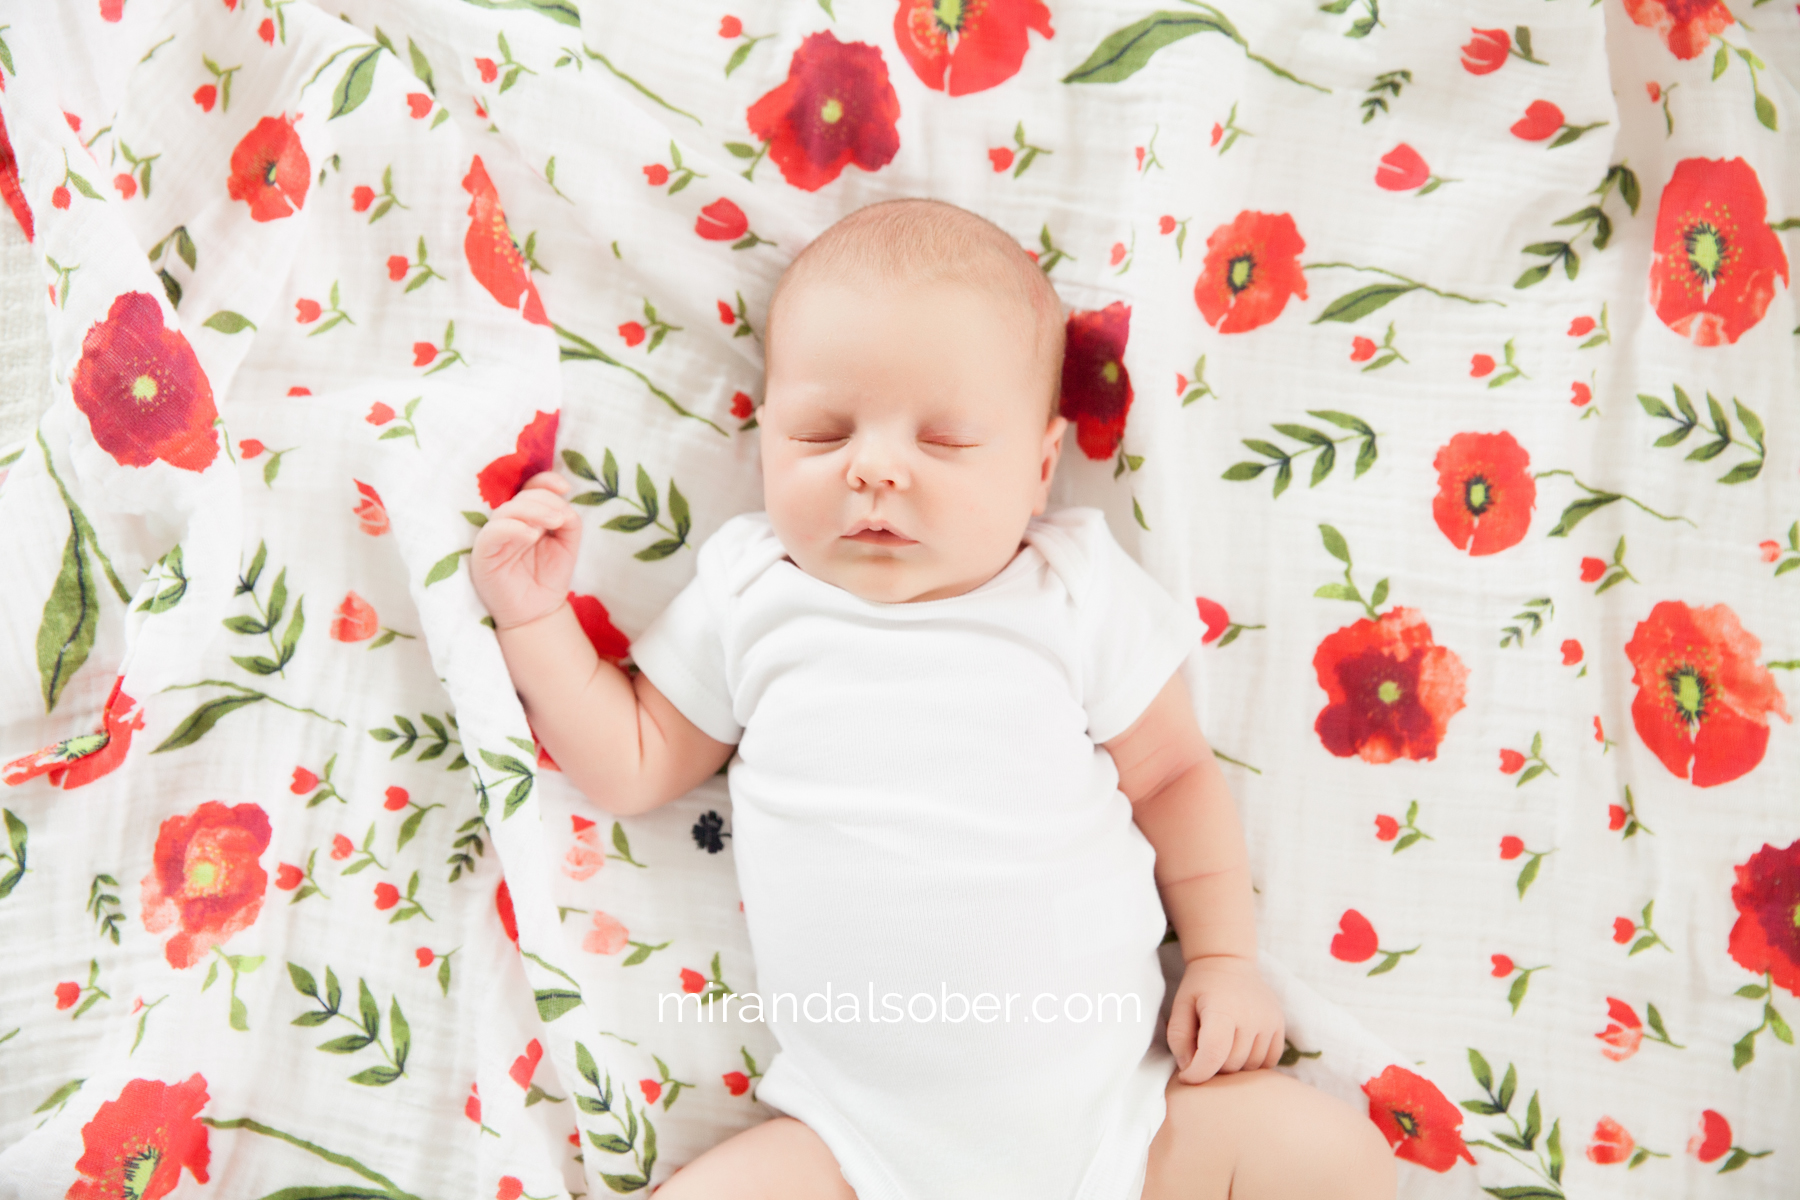 Newborn Photographers Fort Collins, Miranda L. Sober Photography, lifestyle baby photography